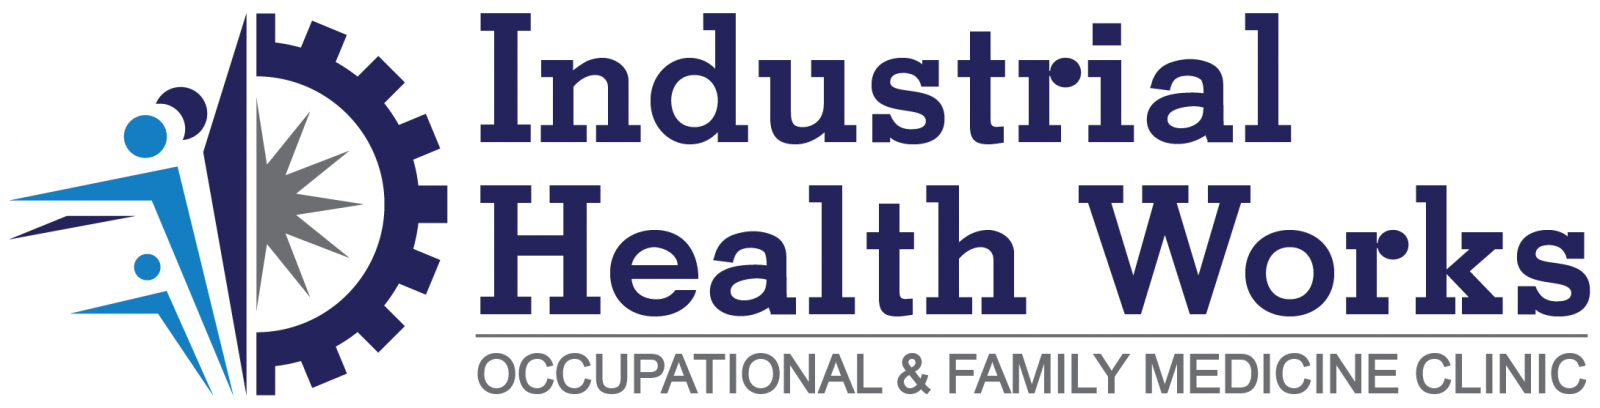 Industrial Health Works